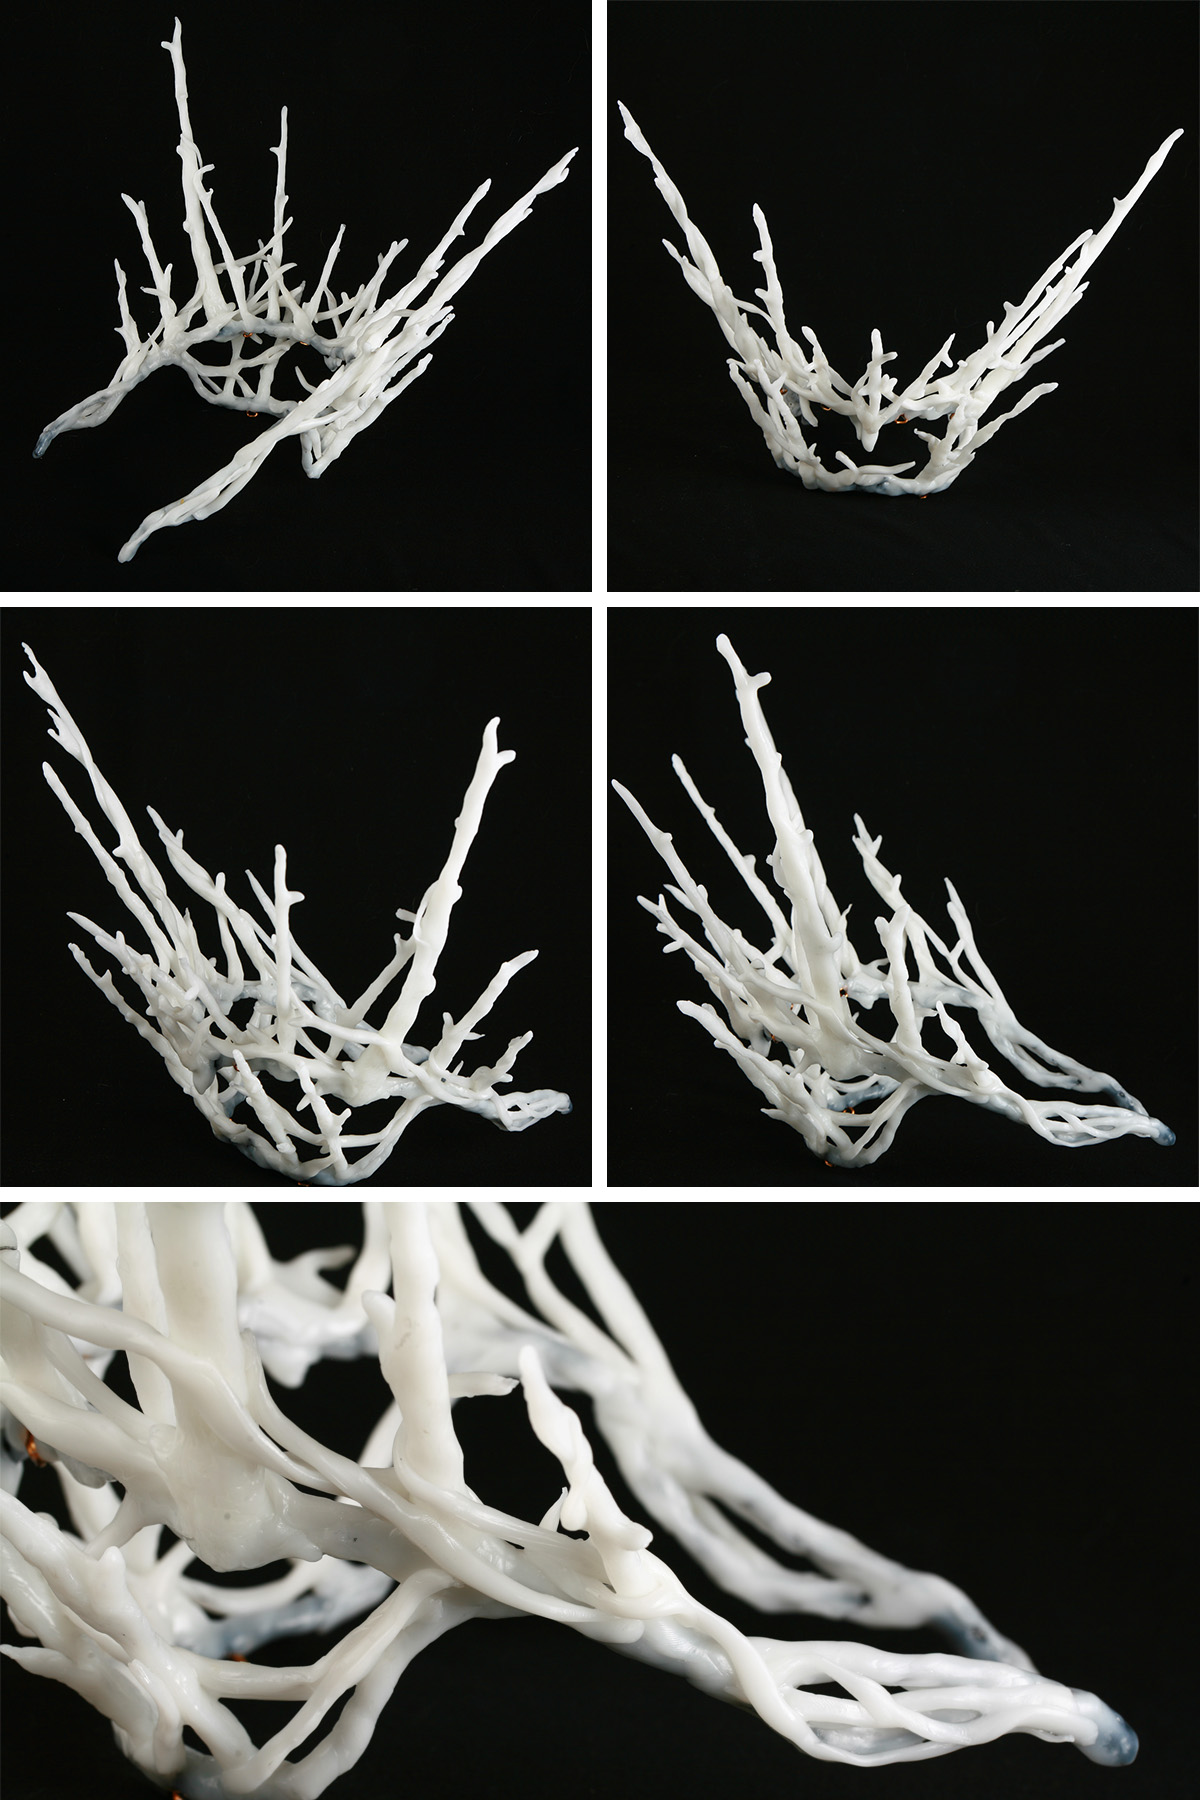 A 5 part image showing multiple views of a white plastic replica of Thranduil's crown.